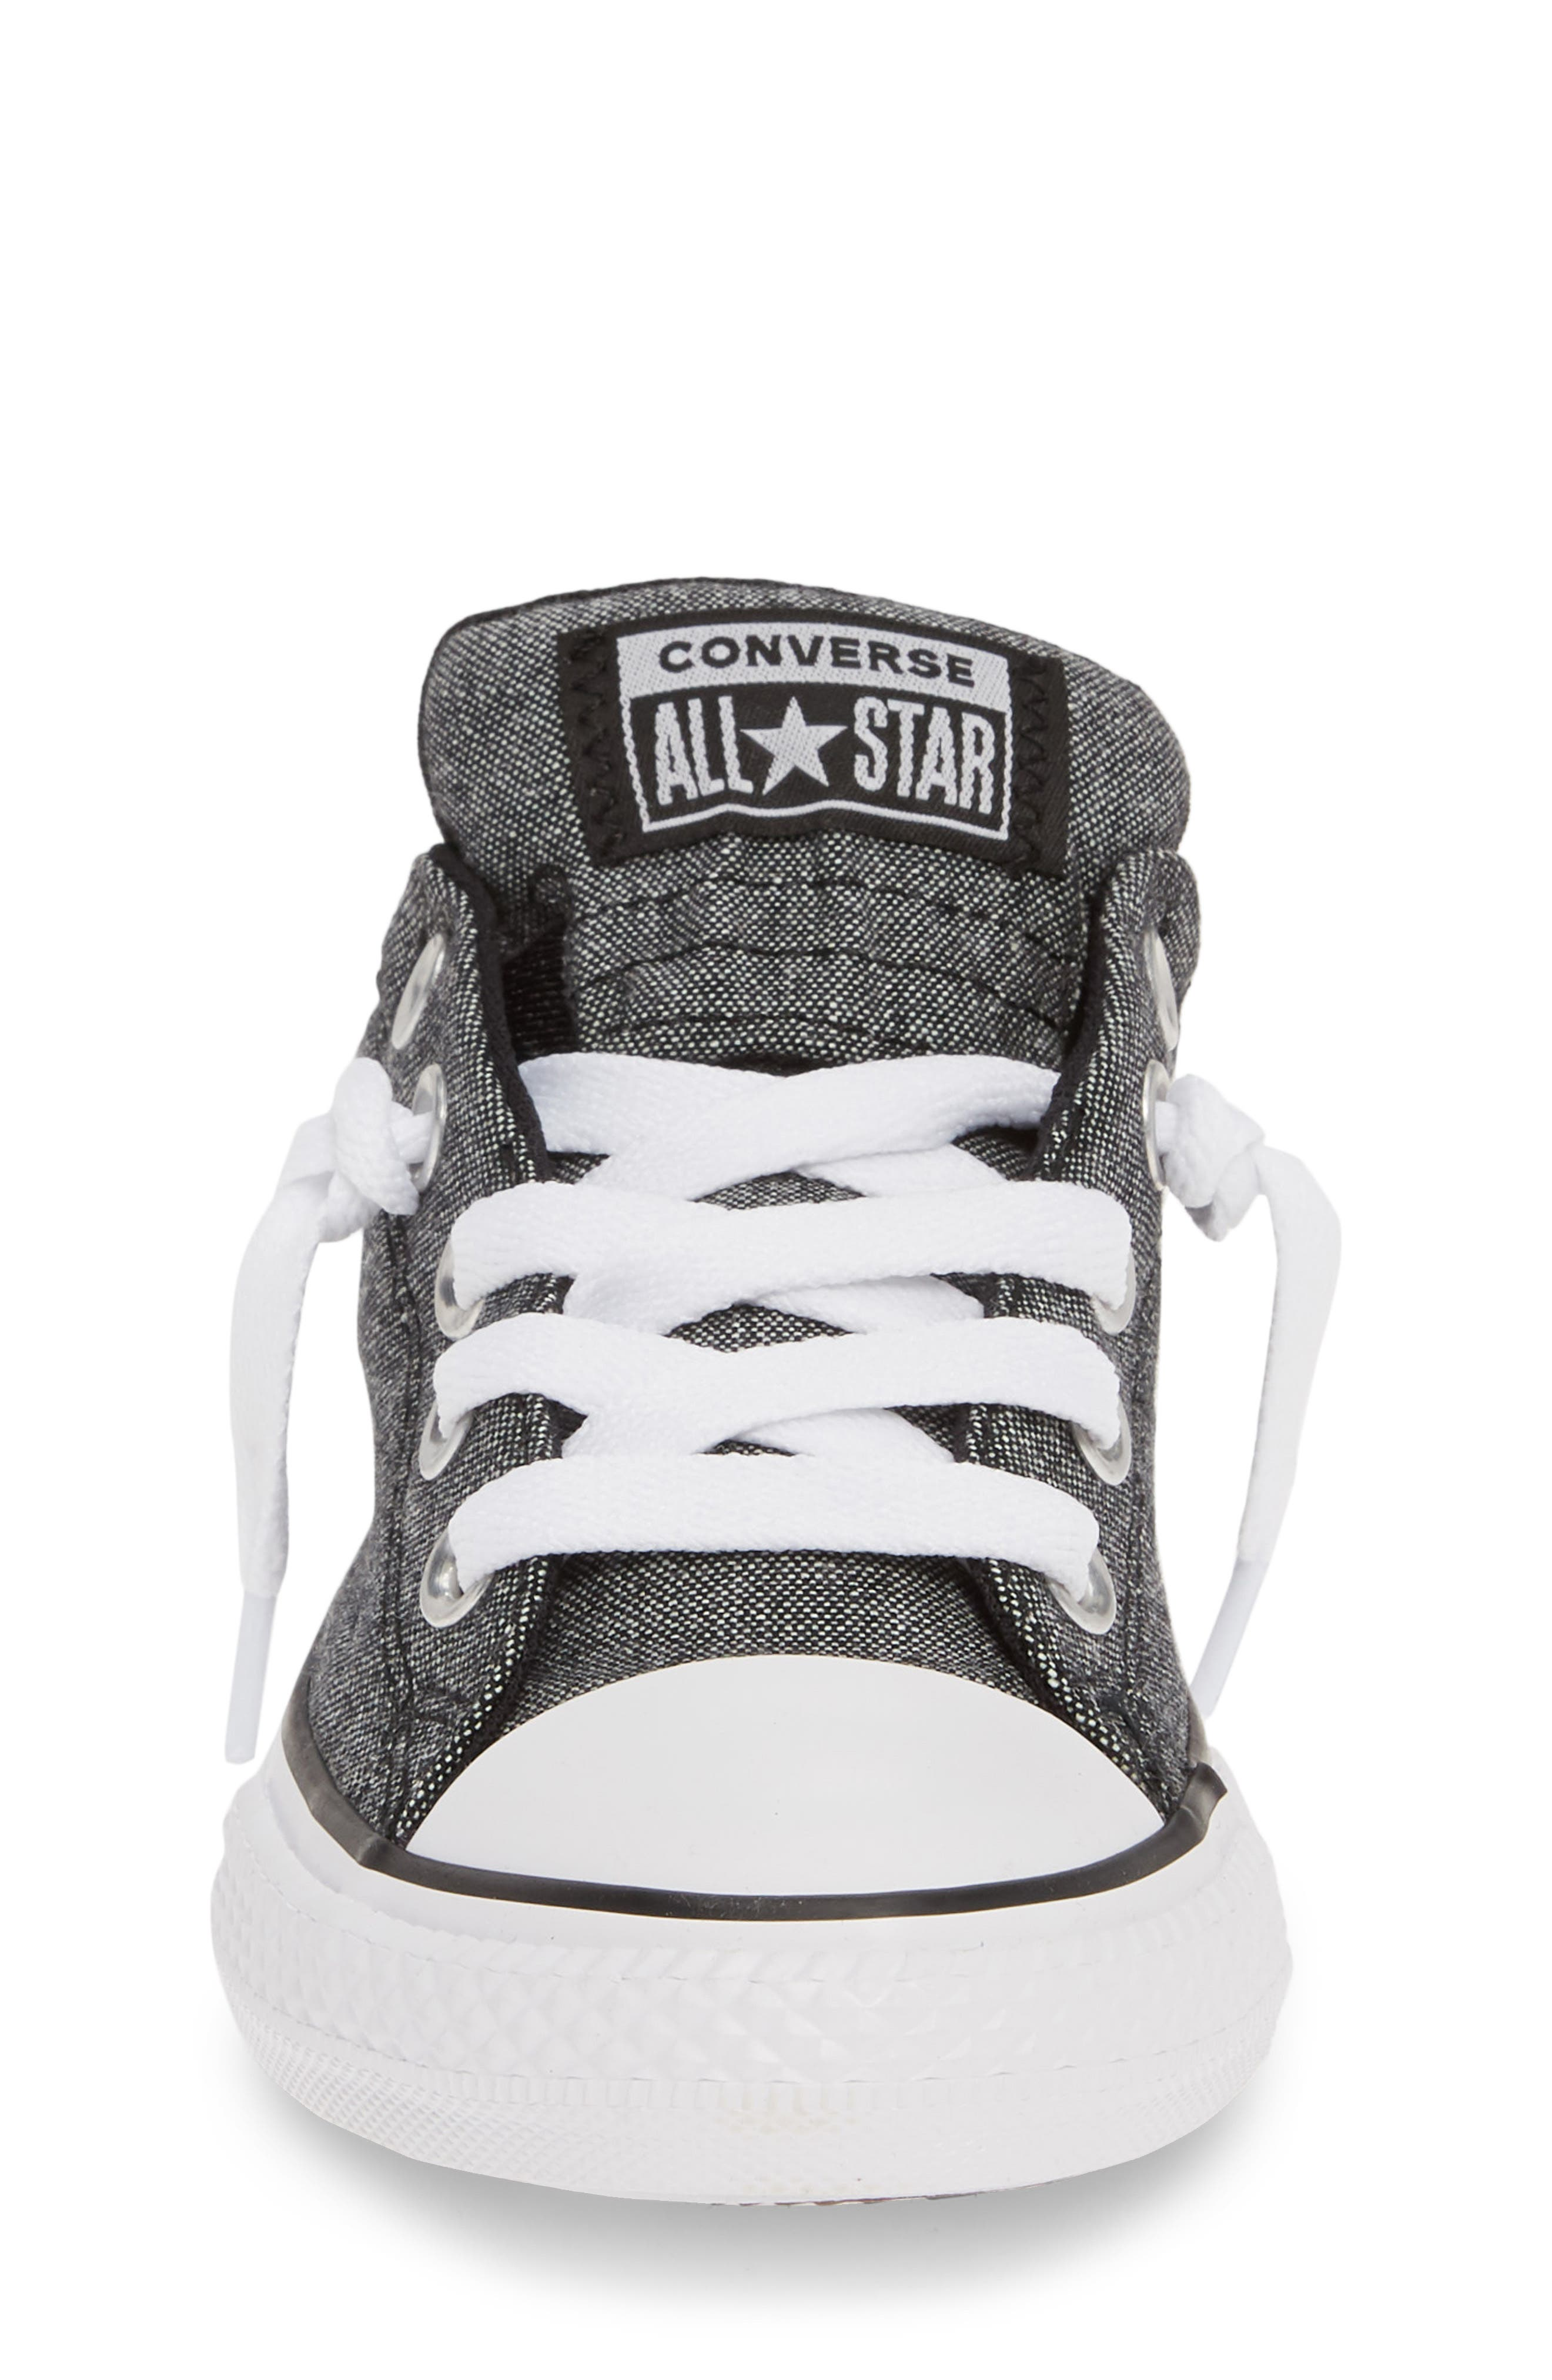 CONVERSE, Chuck Taylor<sup>®</sup> All Star<sup>®</sup> Street Sneaker, Alternate thumbnail 4, color, BLACK/ BLACK/ WHITE